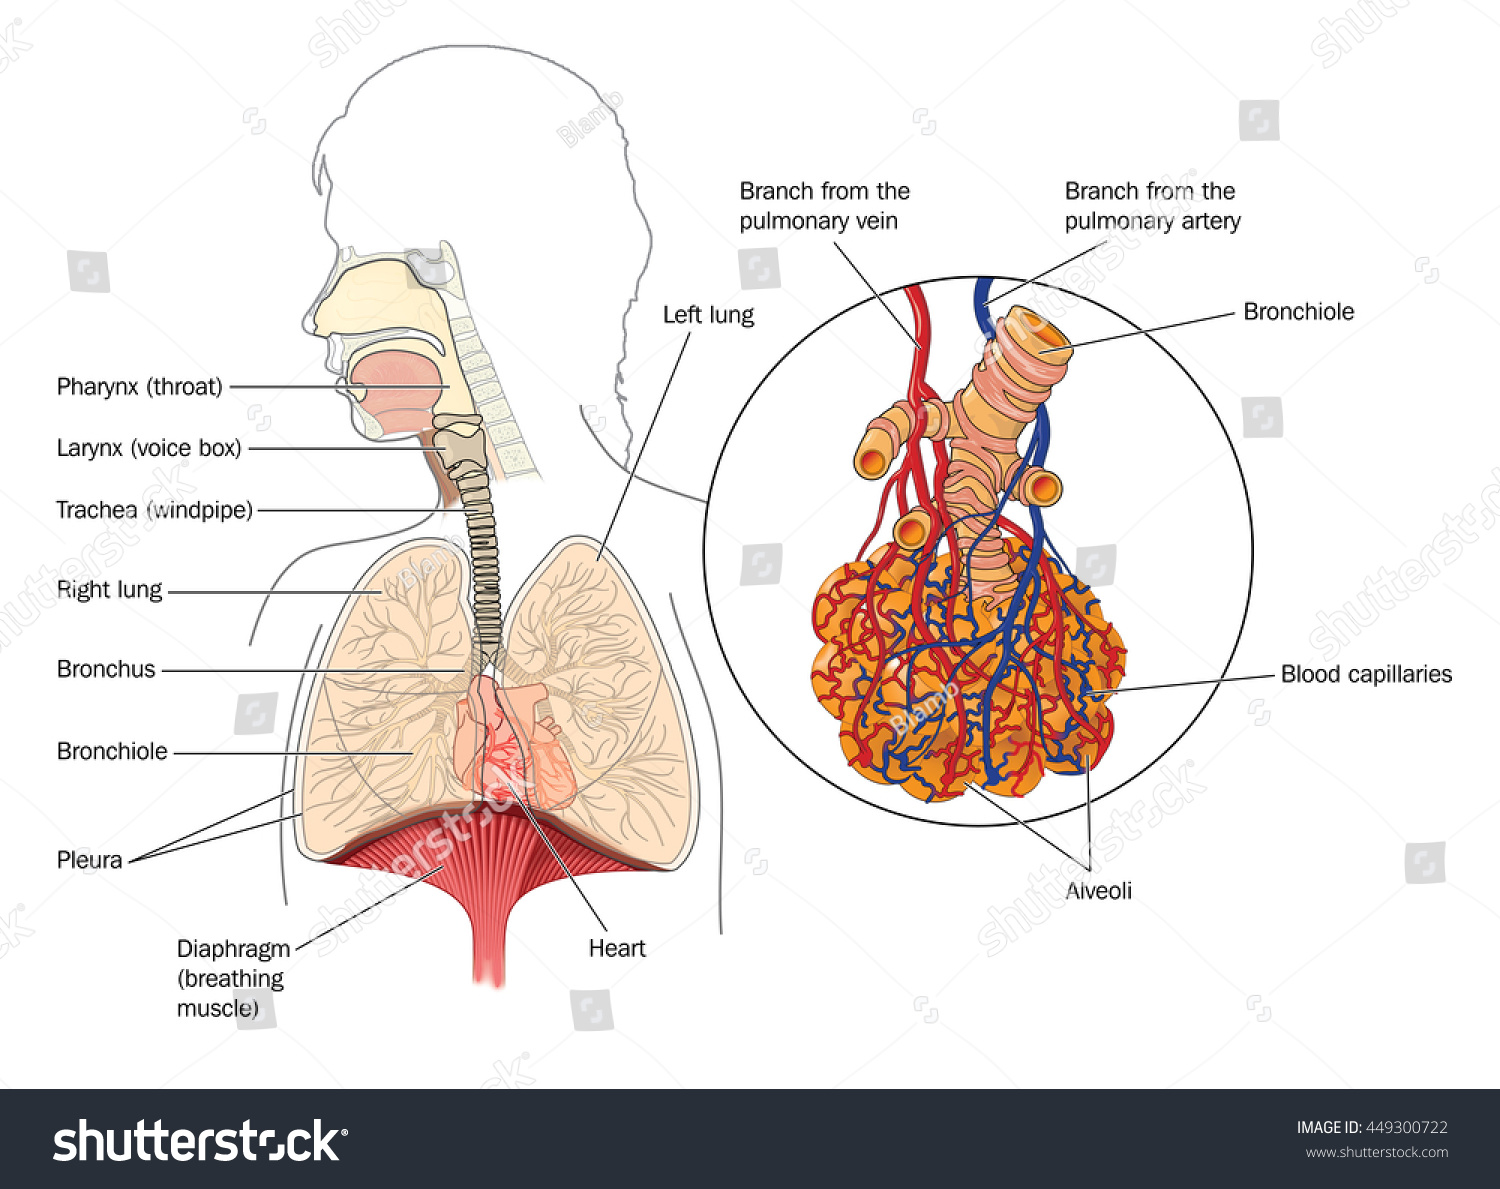 Respiratory system mouth lungs detail bronchioles em ilustrao the respiratory system from the mouth to the lungs with detail of bronchioles and alveoli with ccuart Choice Image